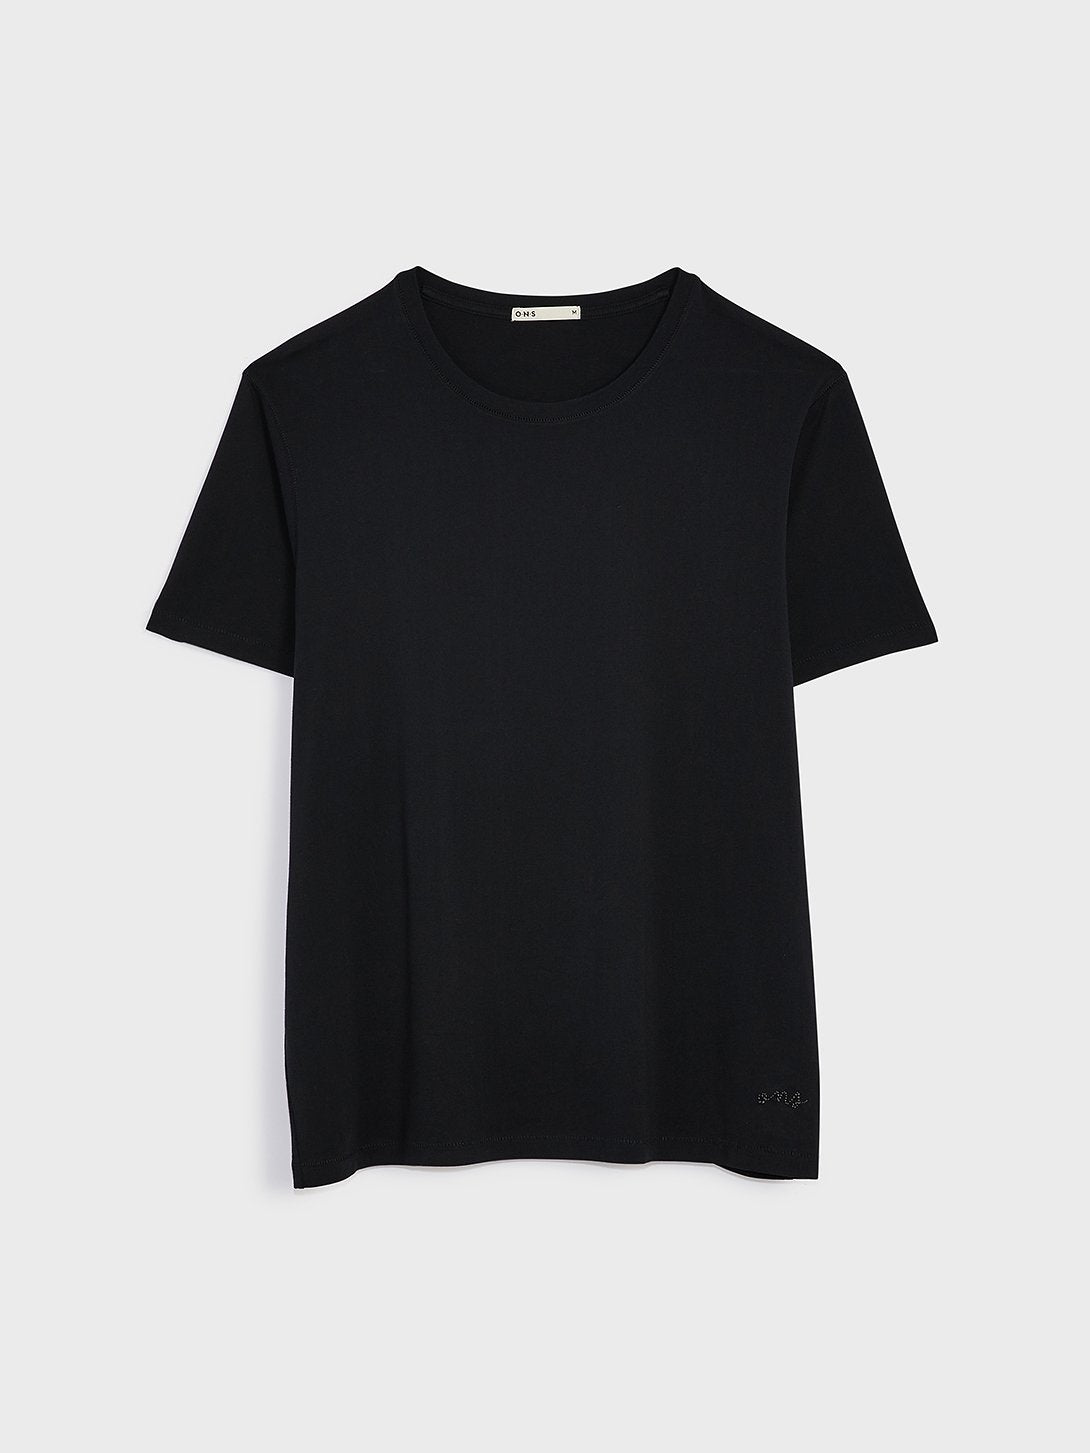 ons village crew neck tee Black 100% Supima Cotton, Pre-shrunk cotton. Round-neck men's Tee